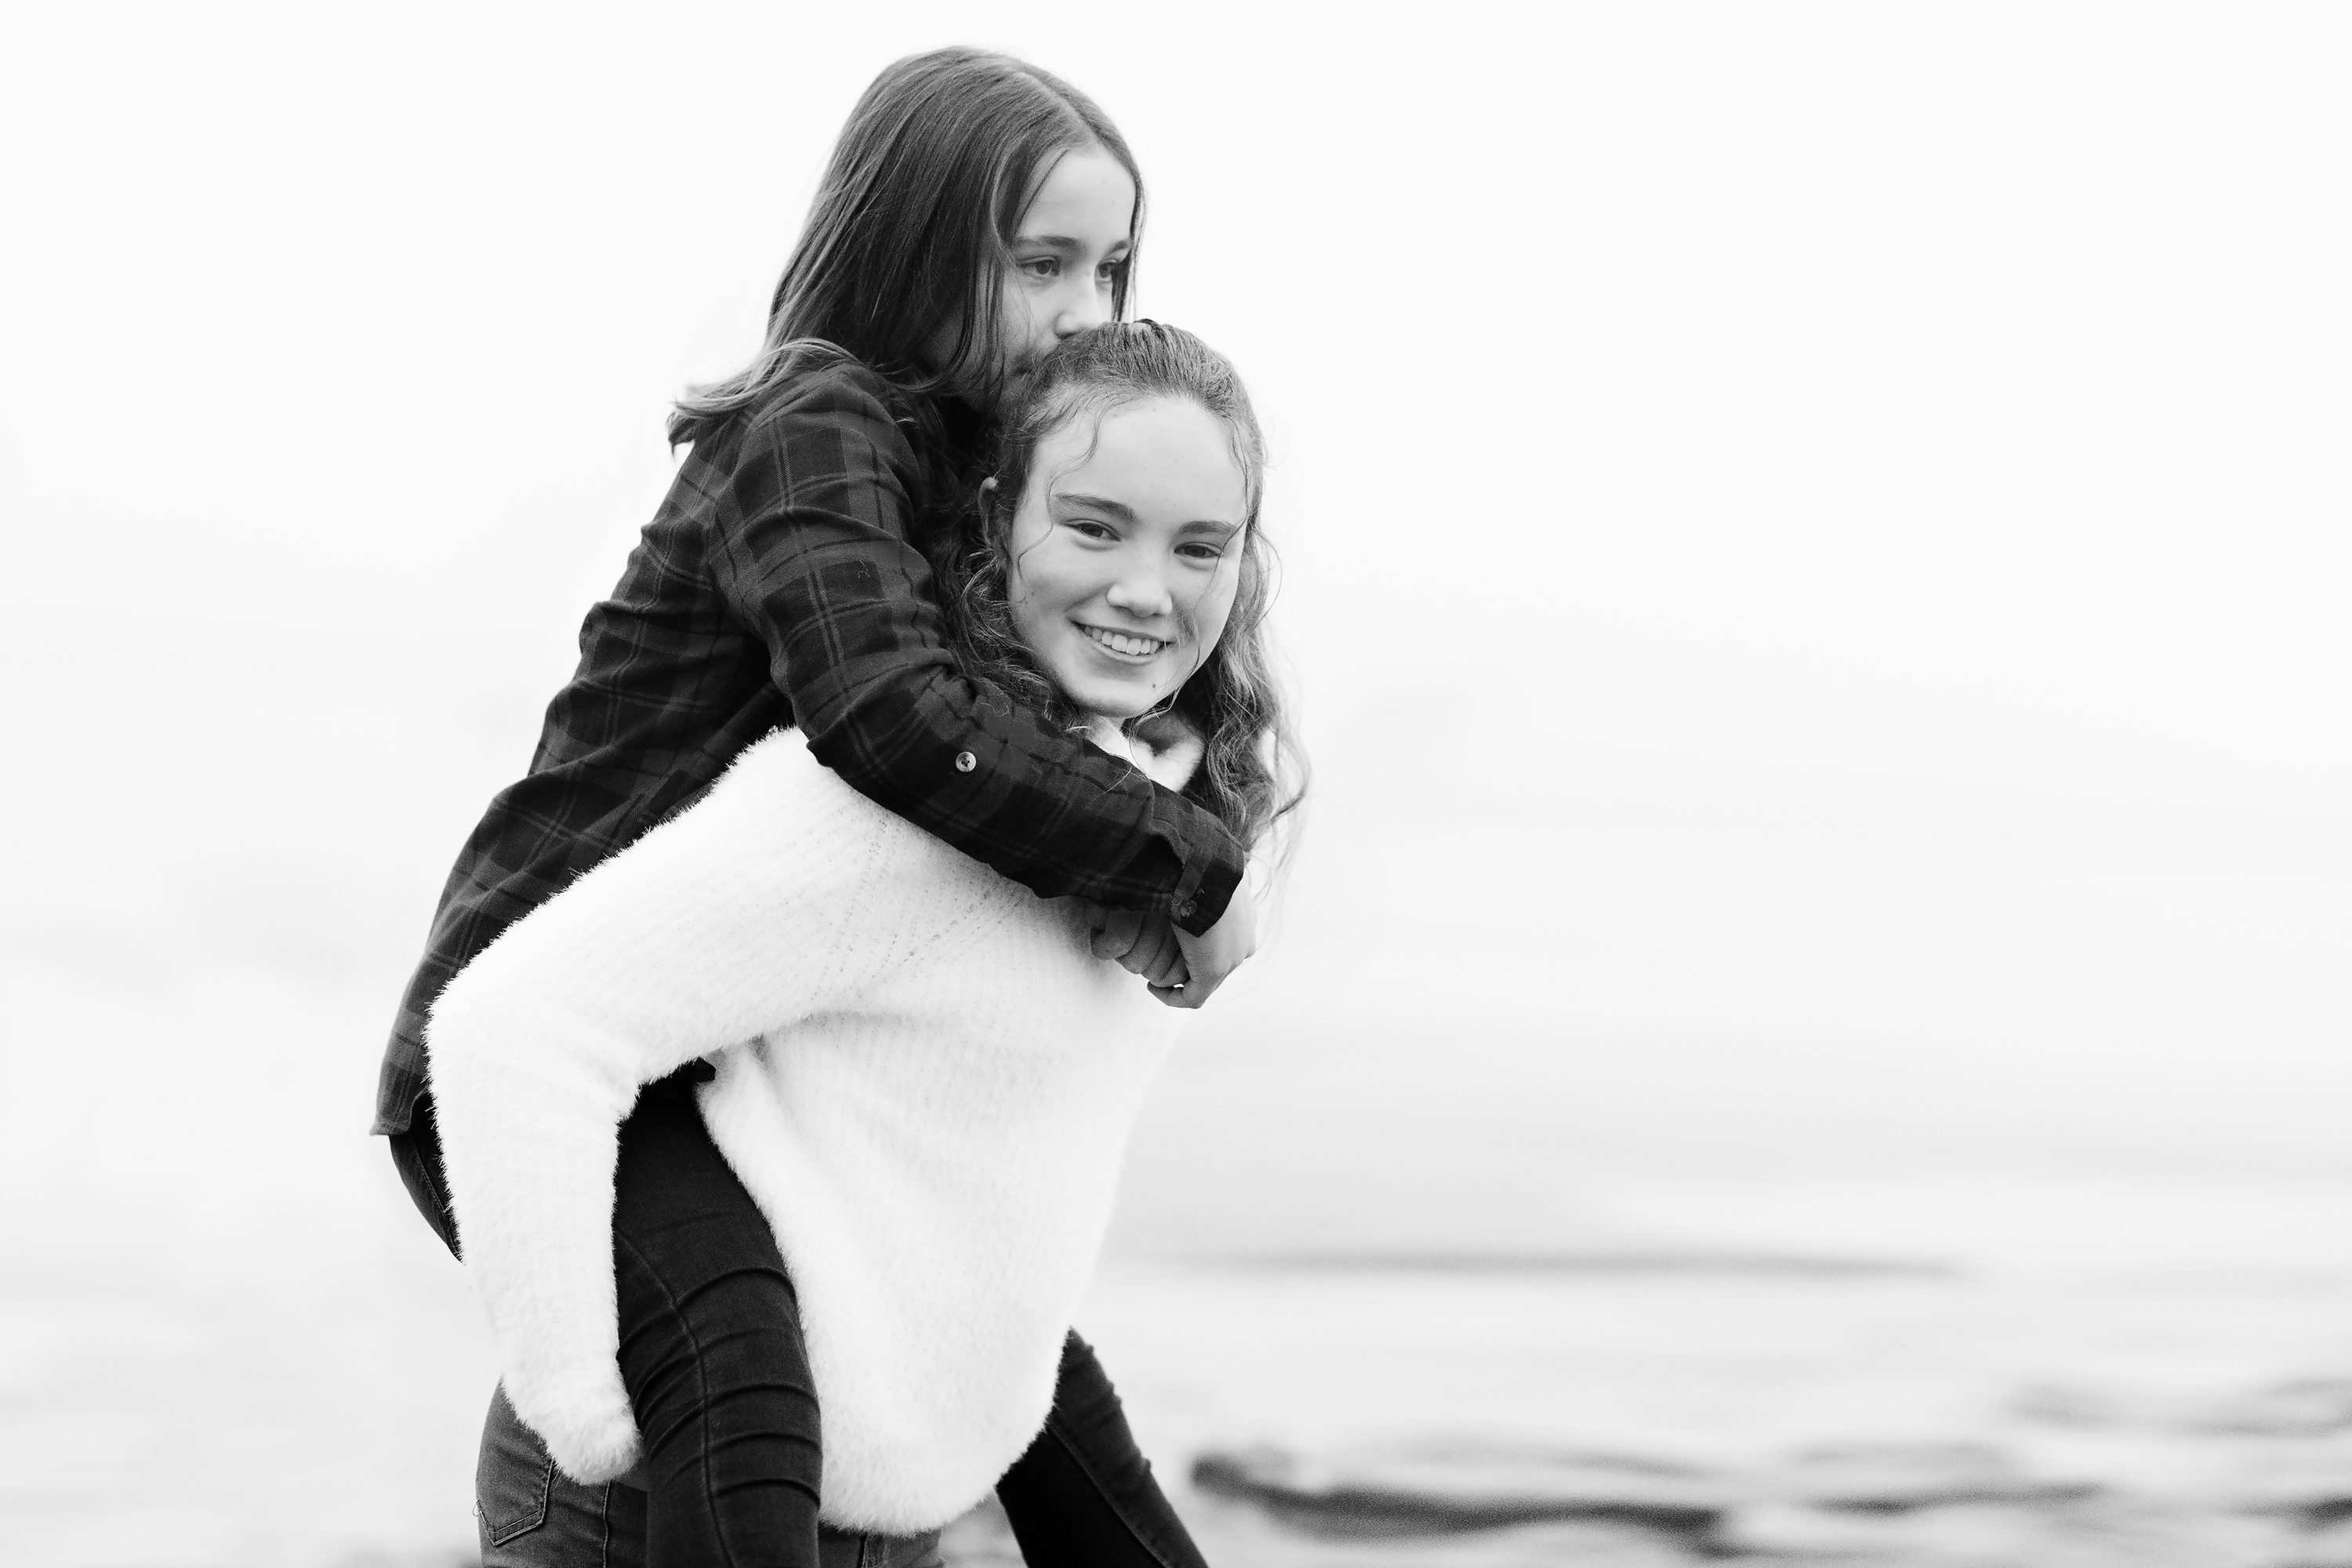 Family beach photo shoot with Gemma Griffiths Photography